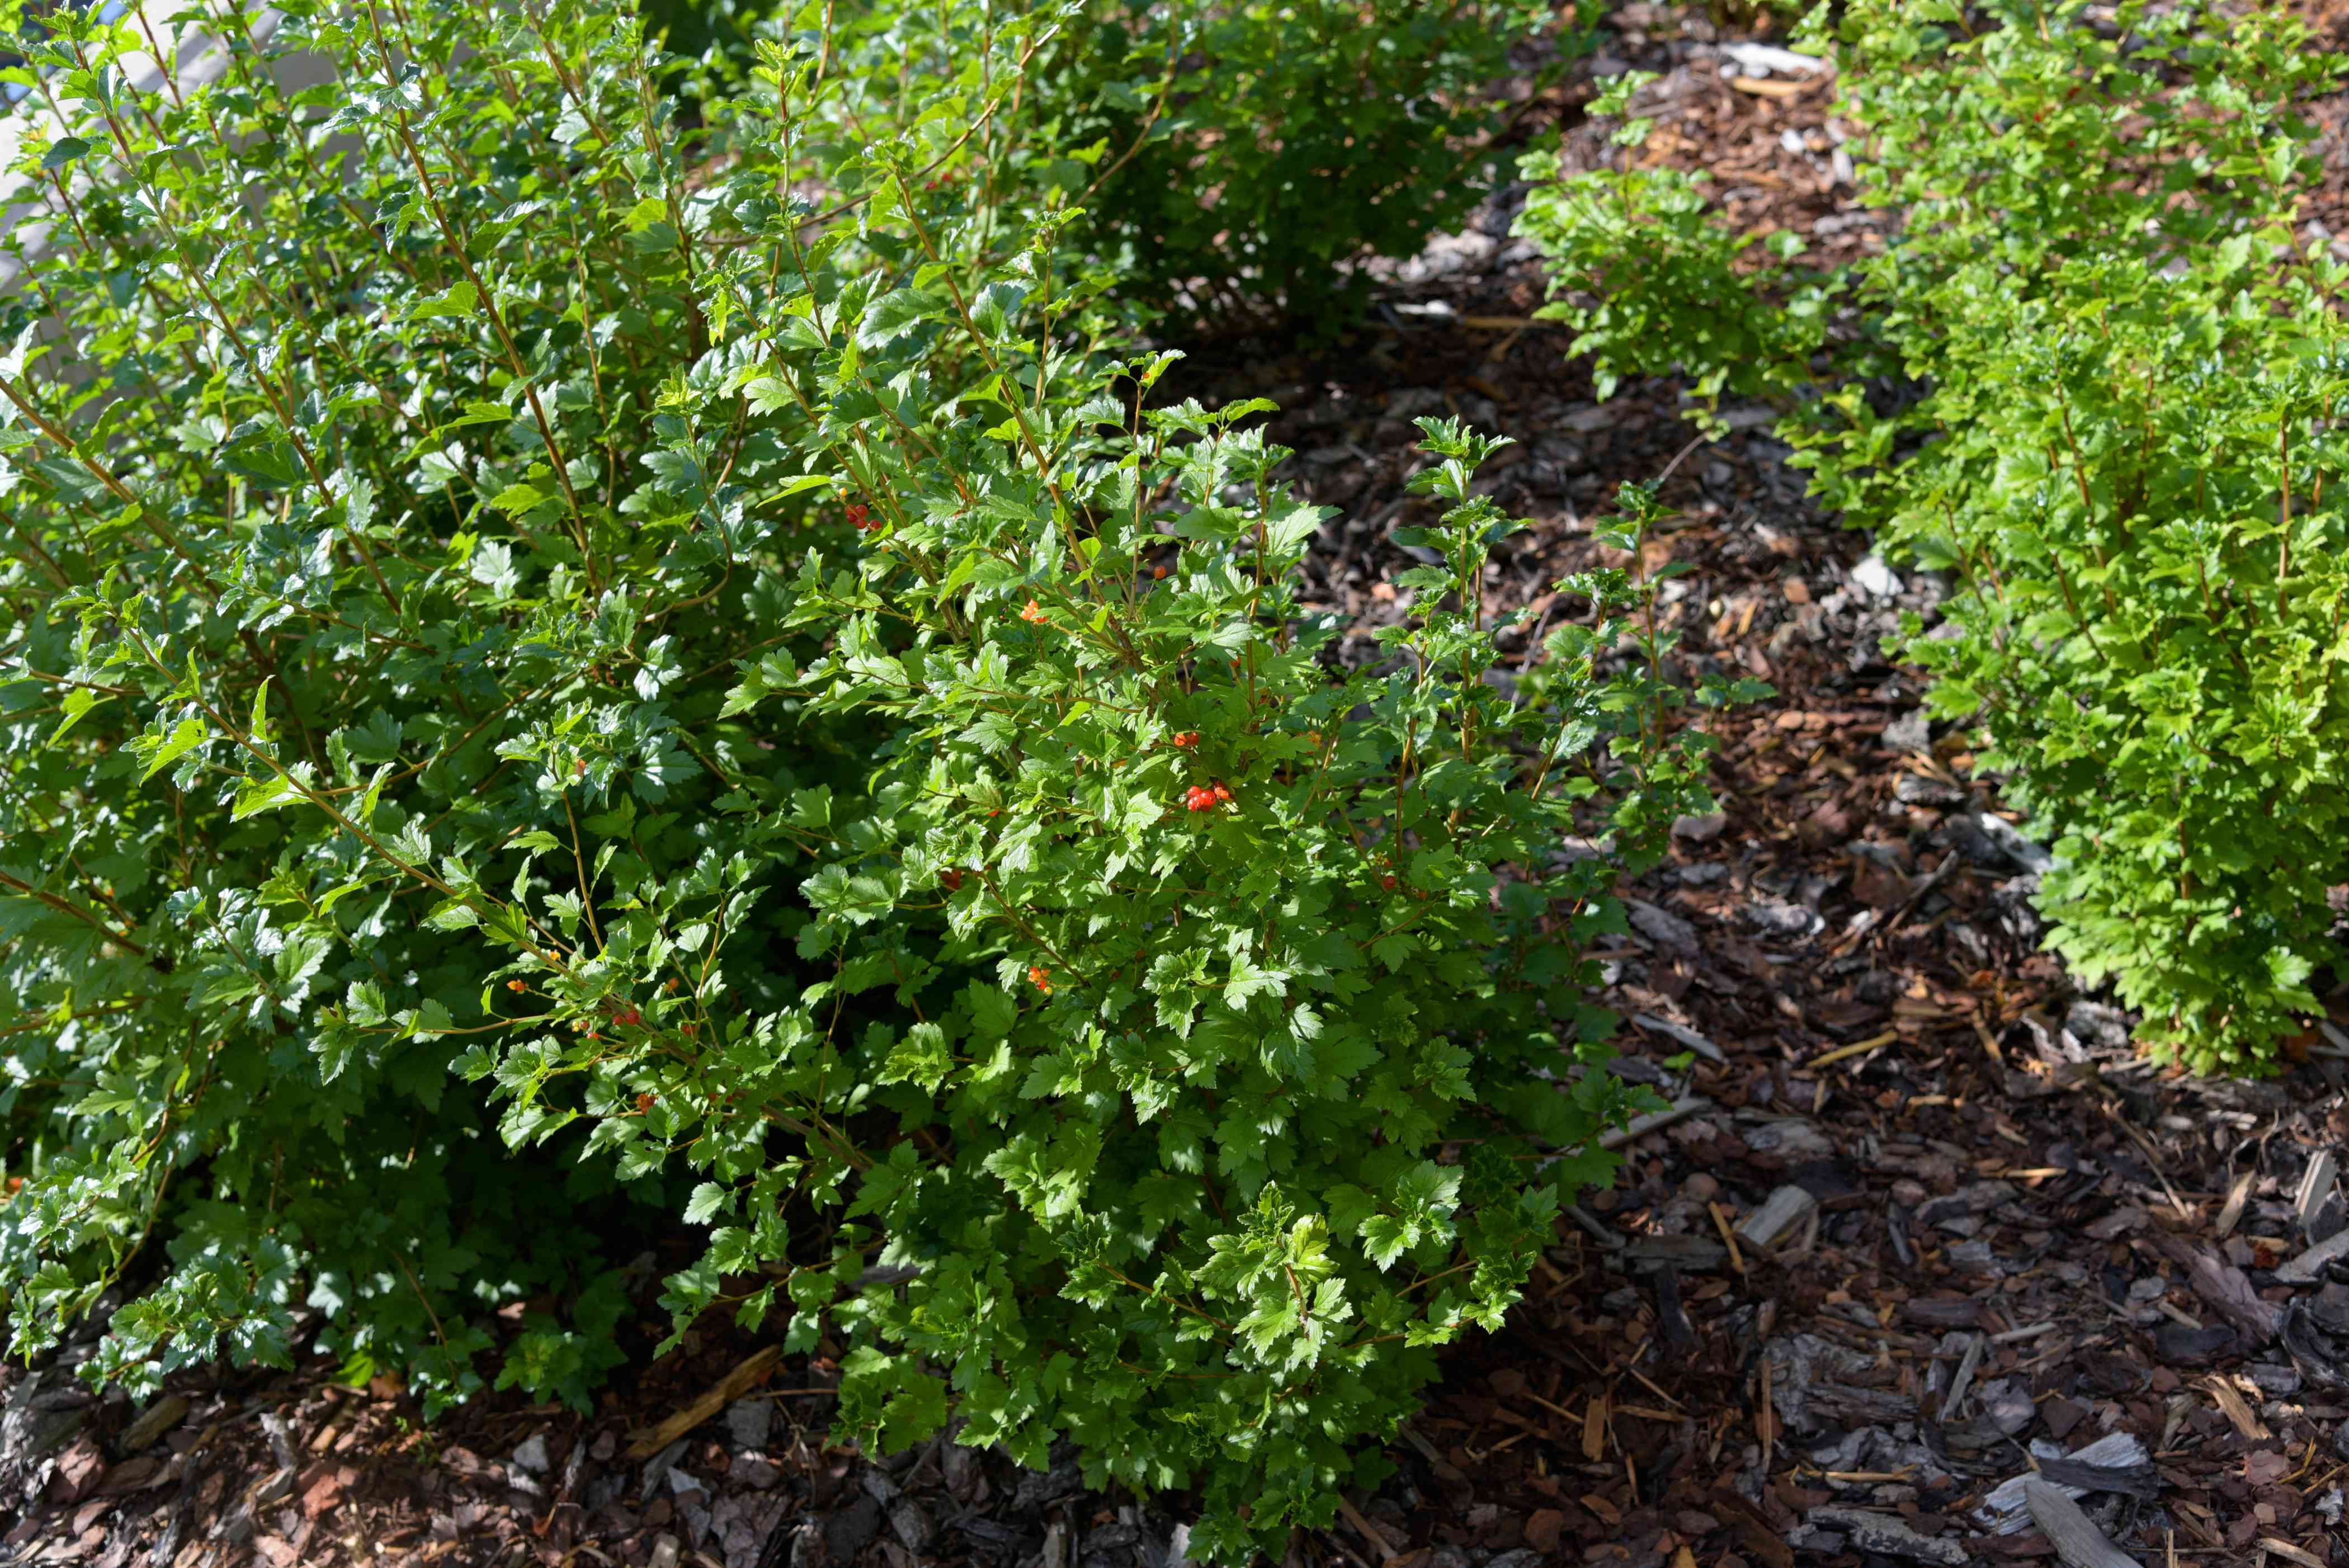 Alpine currant shrubs with dense leaves surrounded by mulch in garden